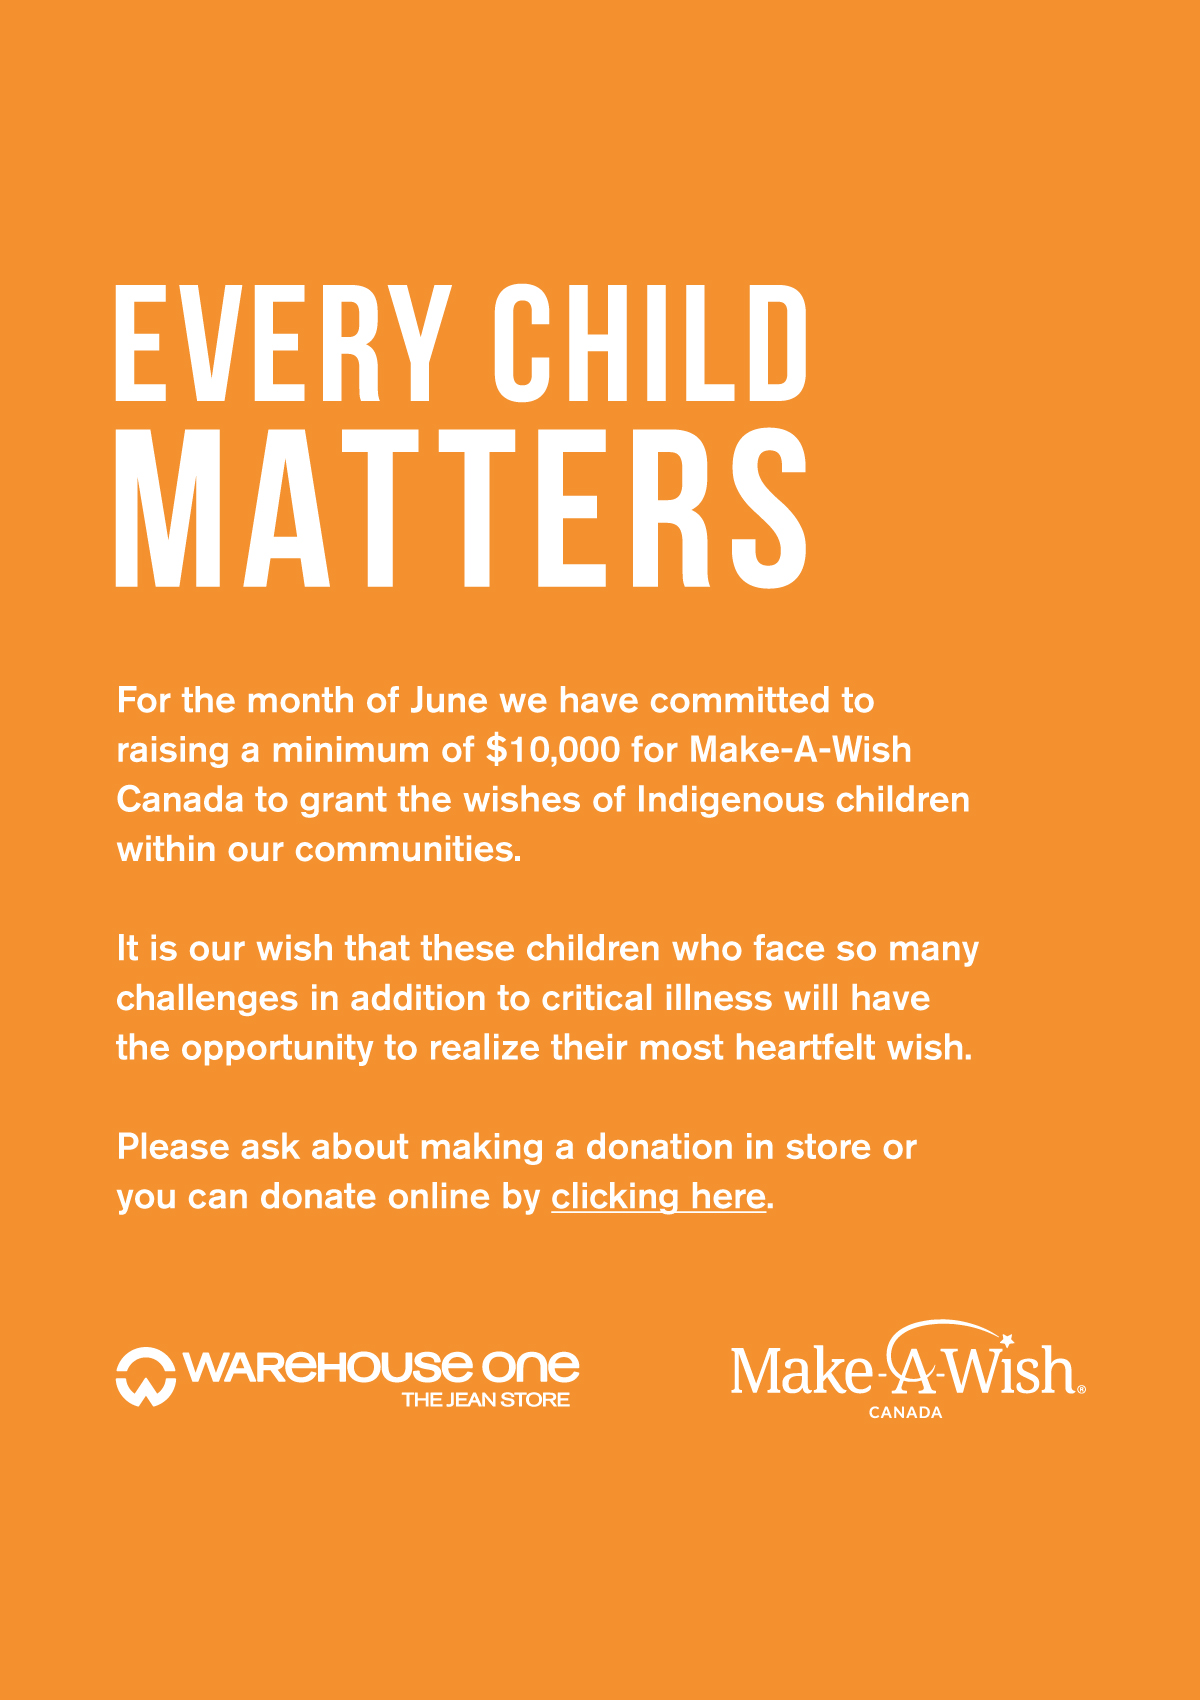 Every child matters. For the month of June we have committed to raising a minimum of $10,000 for Make-A-Wish Canada to grant the wishes of Indigenous children within our communities. It is our wish that these children who face so many challenges in addition to critical illness will have the opportunity to realize their most heartfelt wish. Please ask about making a donation in store or you can donate online by clicking here.